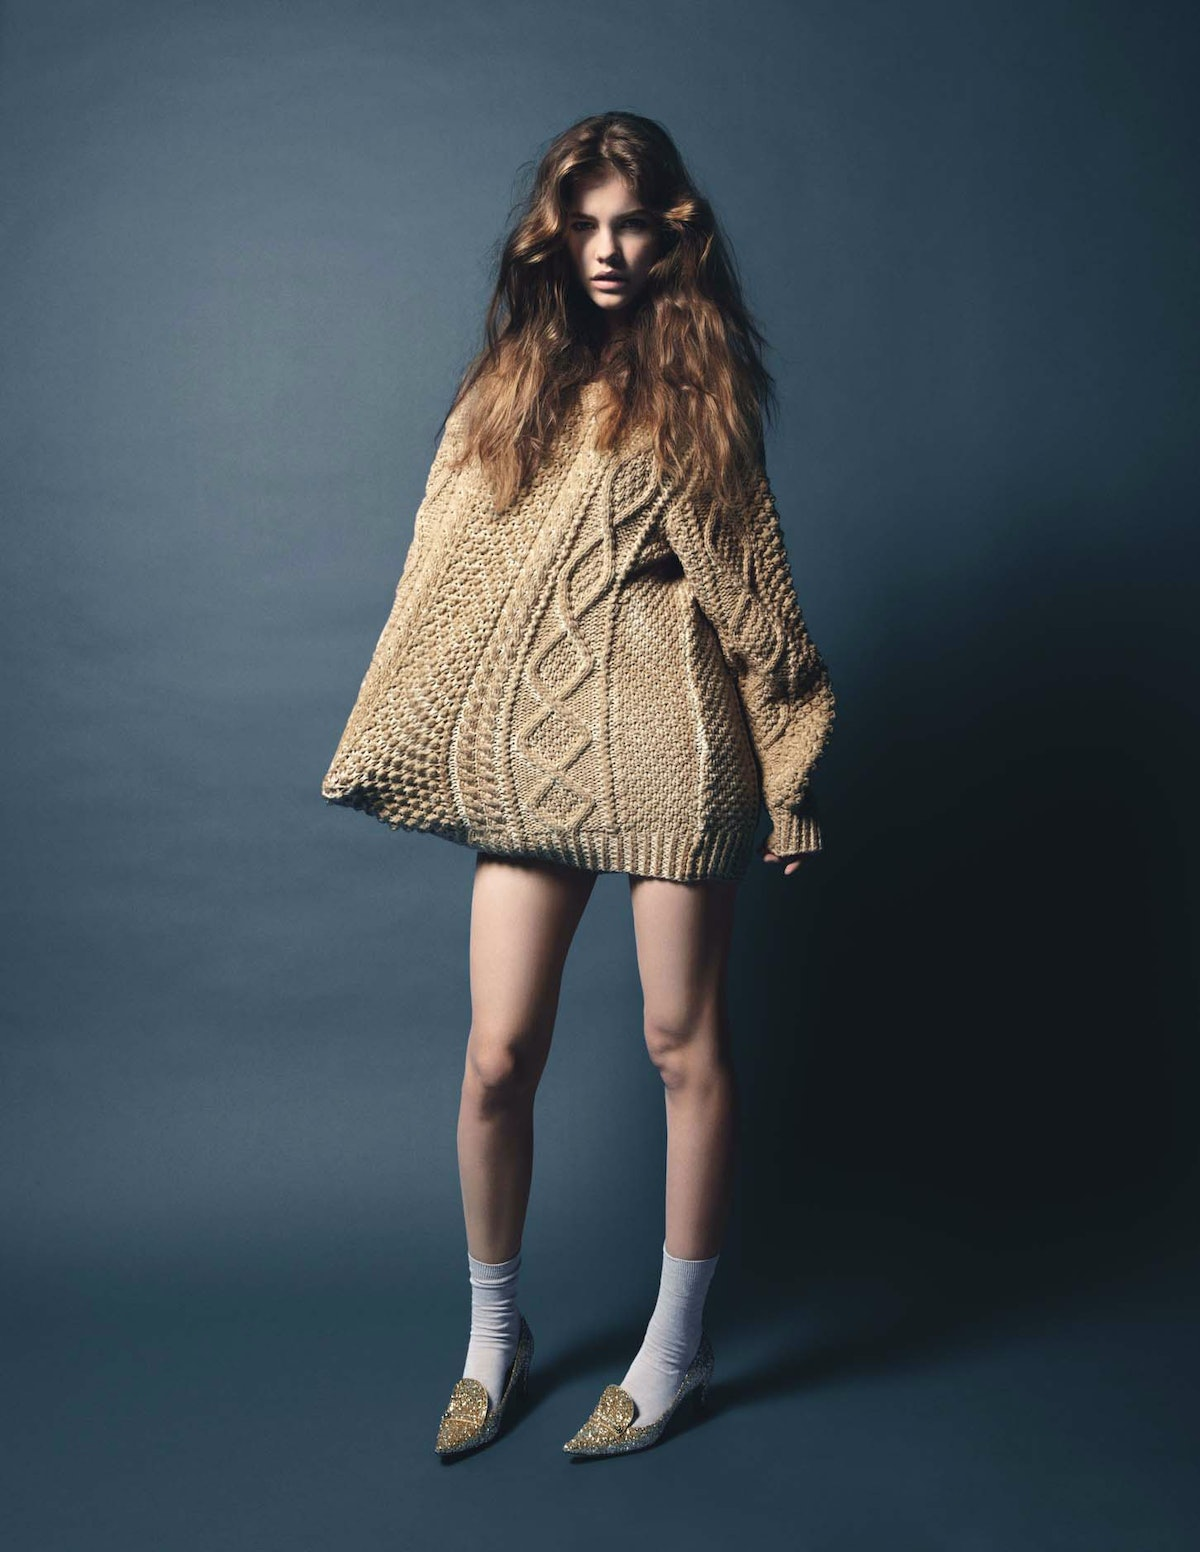 """""""Sweater Girl"""" photographed by Claudia Knoepfel & Stefan Indlekofer, styled by Alex White; W Magazin..."""